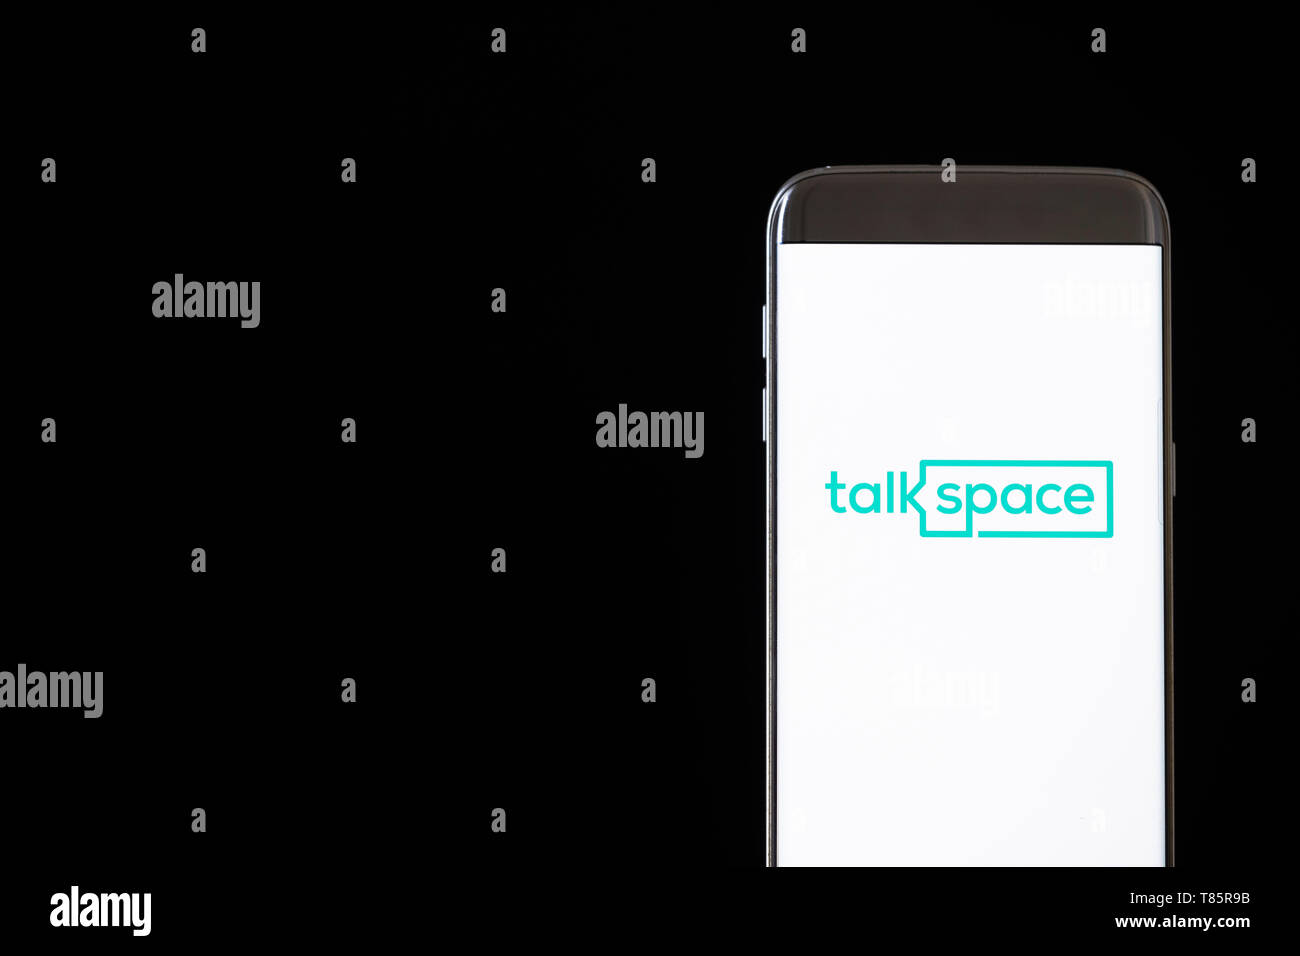 Image of Talkspace app on a smartphone on a black background Stock Photo